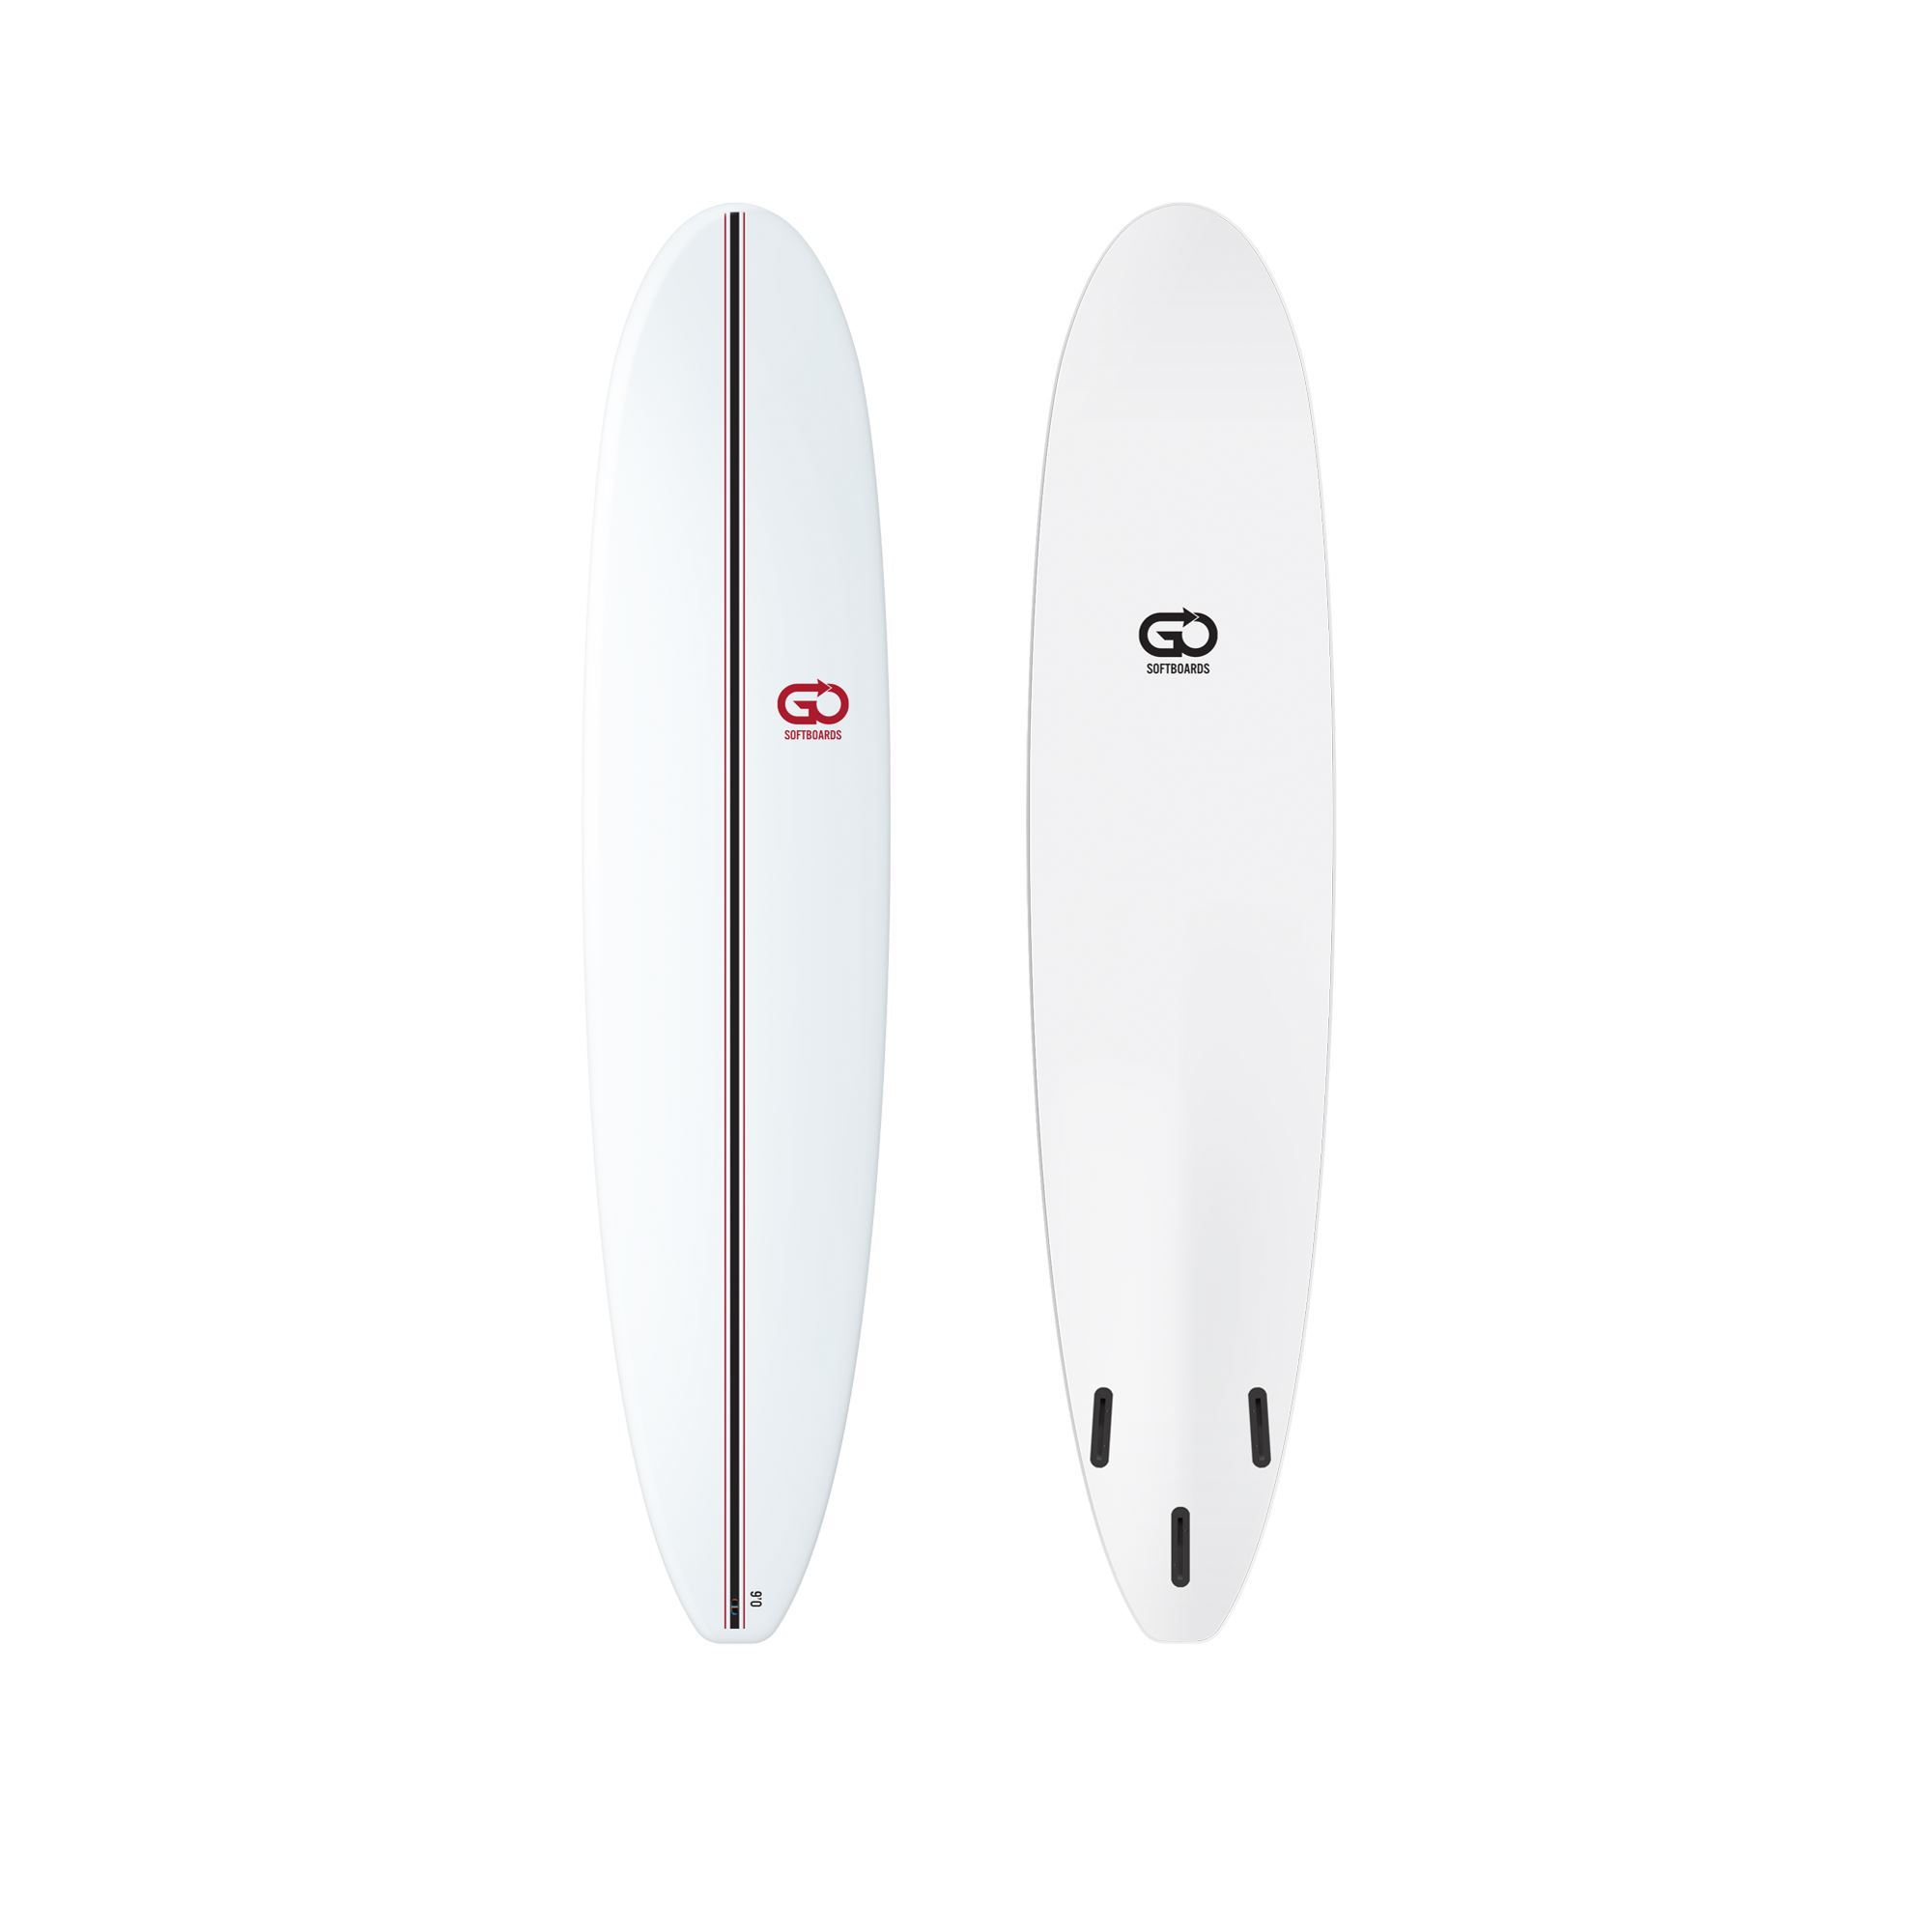 GO Softboard 9.0 Soft Top Surfboard